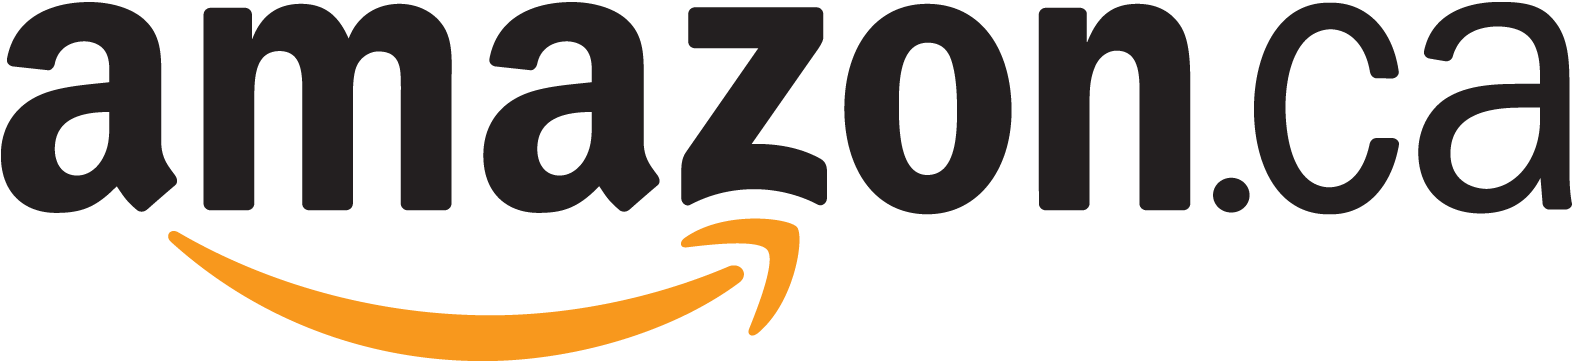 The Girl Who Loved Cheese - Amazon Logo